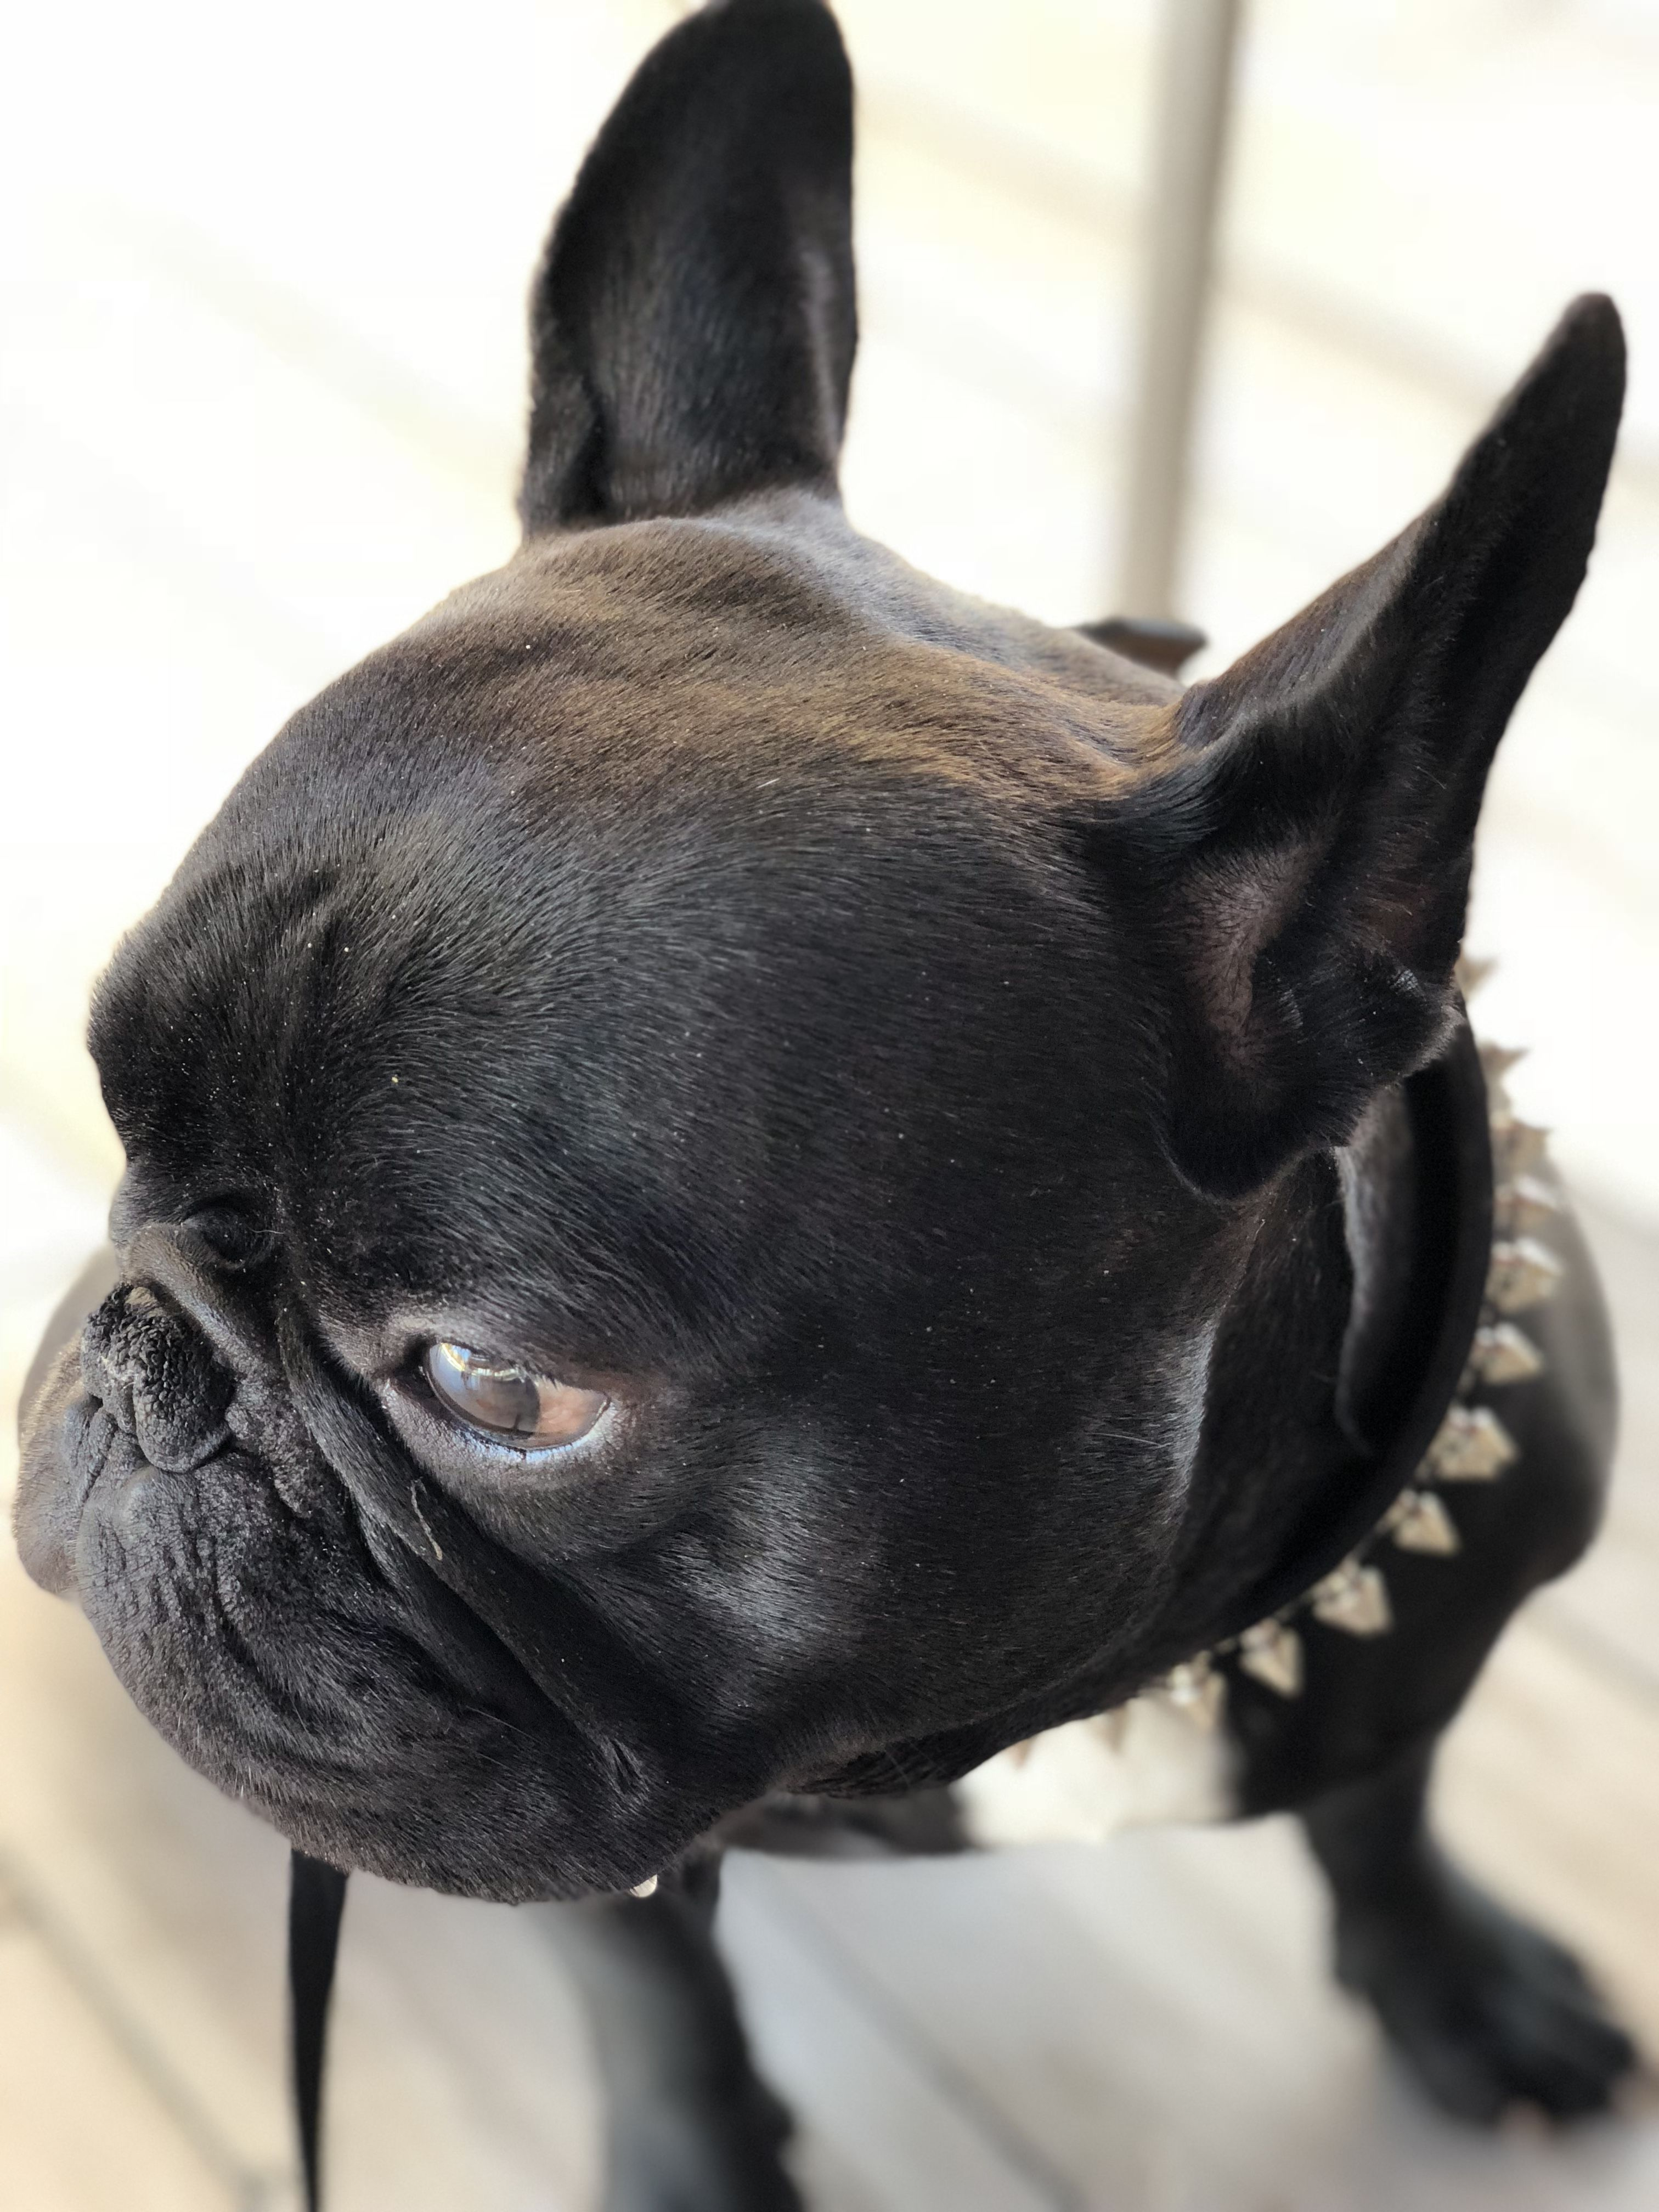 Pin by 4MyBoys21 on ♡♥ FRENCHIE & FRENCHTON LOVE